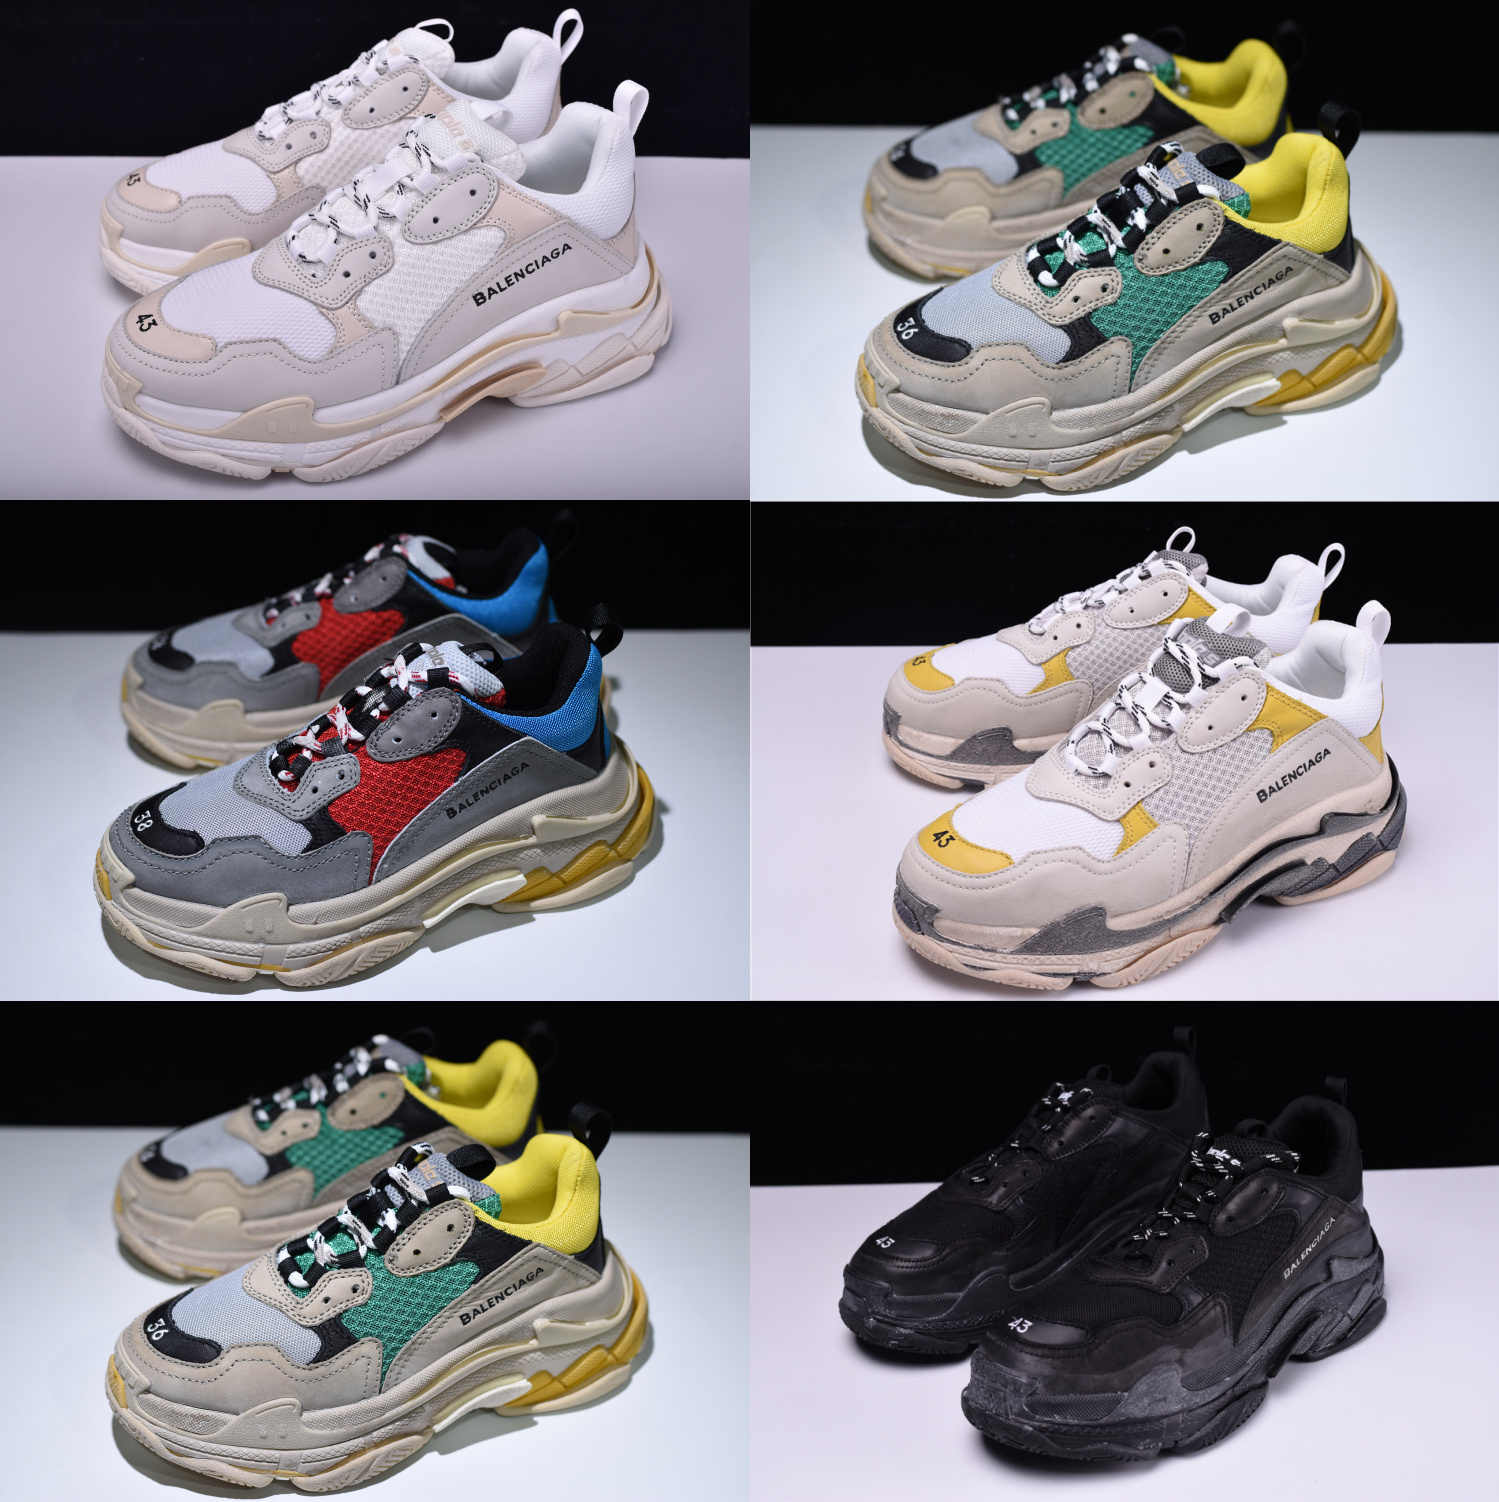 New Balenciagas Triple S Trainers Rare Edition For Men Women Dad Shoes Sneakers Running Shoes Aliexpress